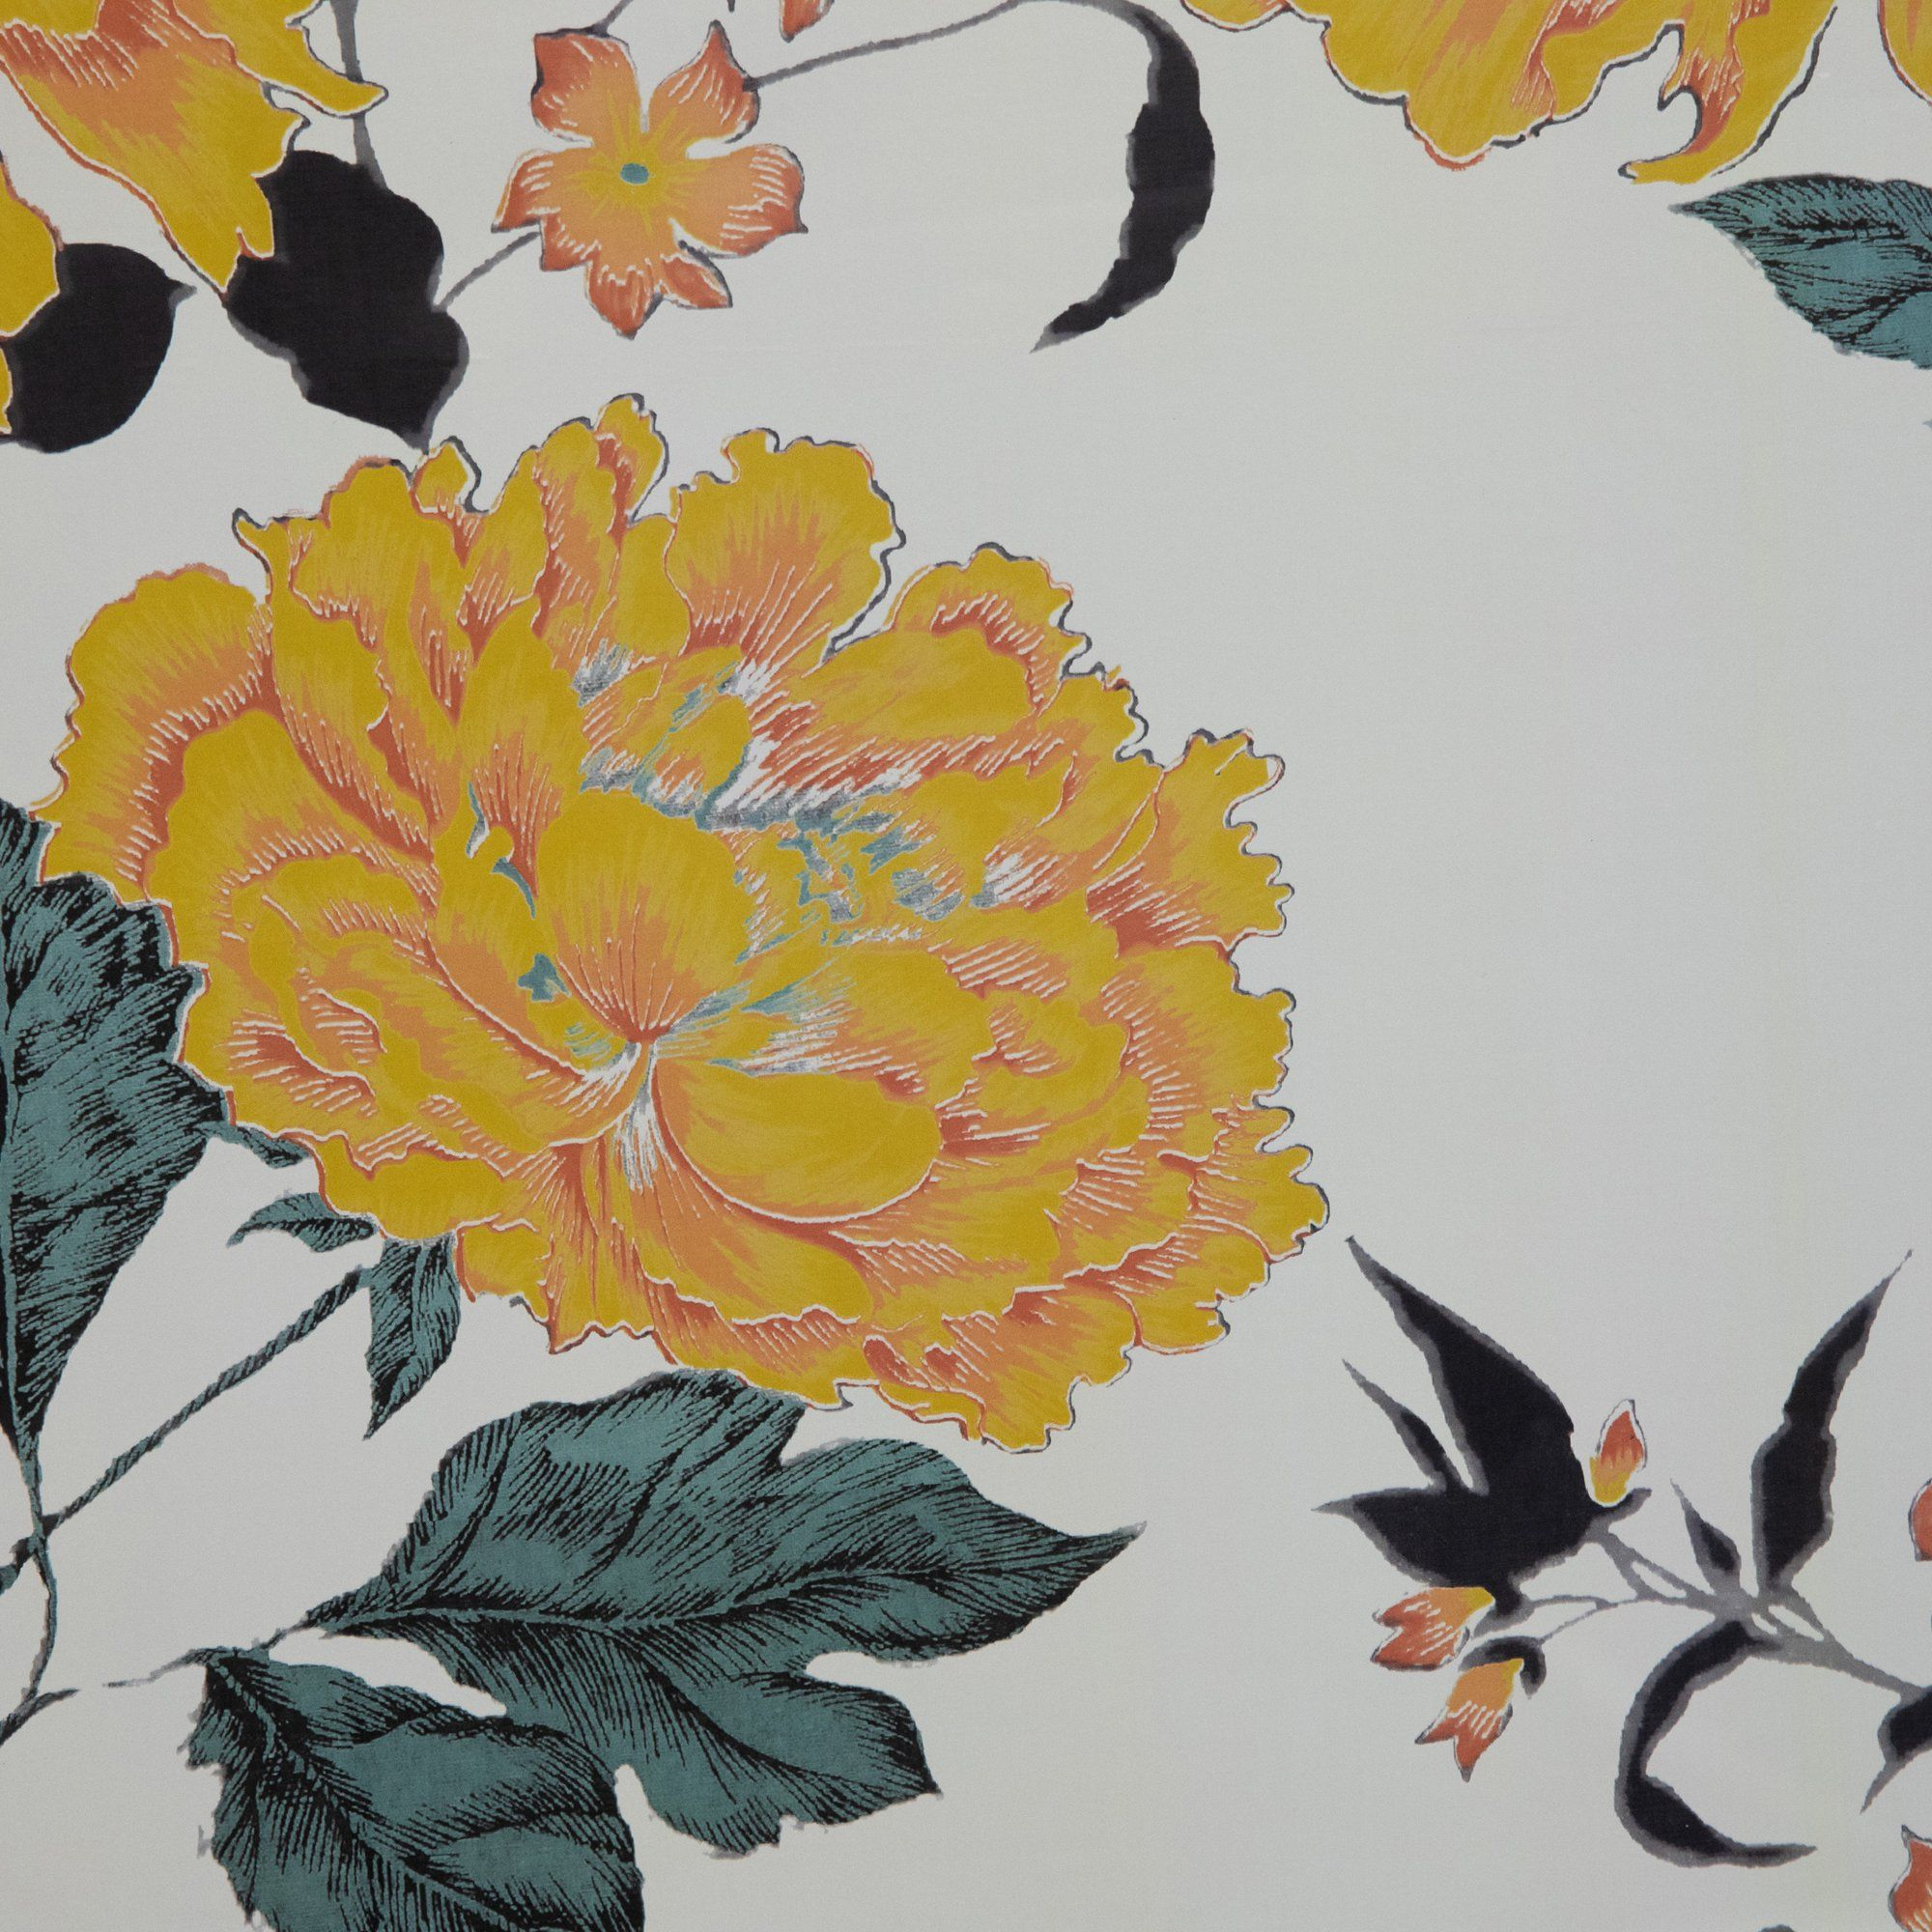 Yellow Vintage Floral Peel And Stick Wallpaper By Drew Barrymore Flower Home Walmart Com Peel And Stick Wallpaper Wallpaper Floral Wallpaper